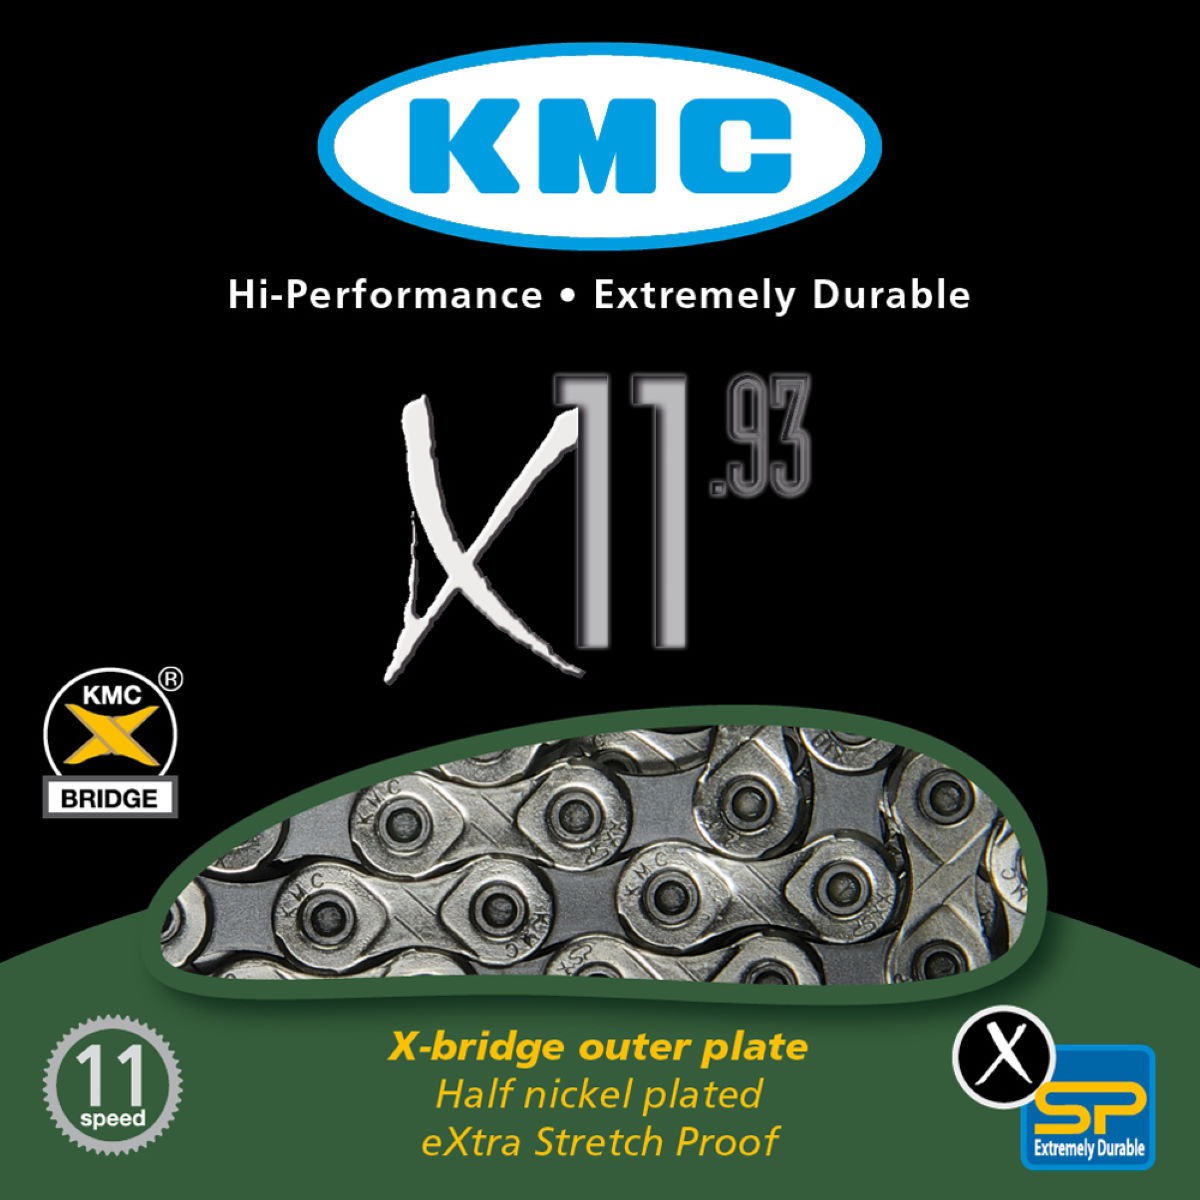 Chaîne KMC X11-93 11 vitesses (114 maillons) - 11 speed 114 links